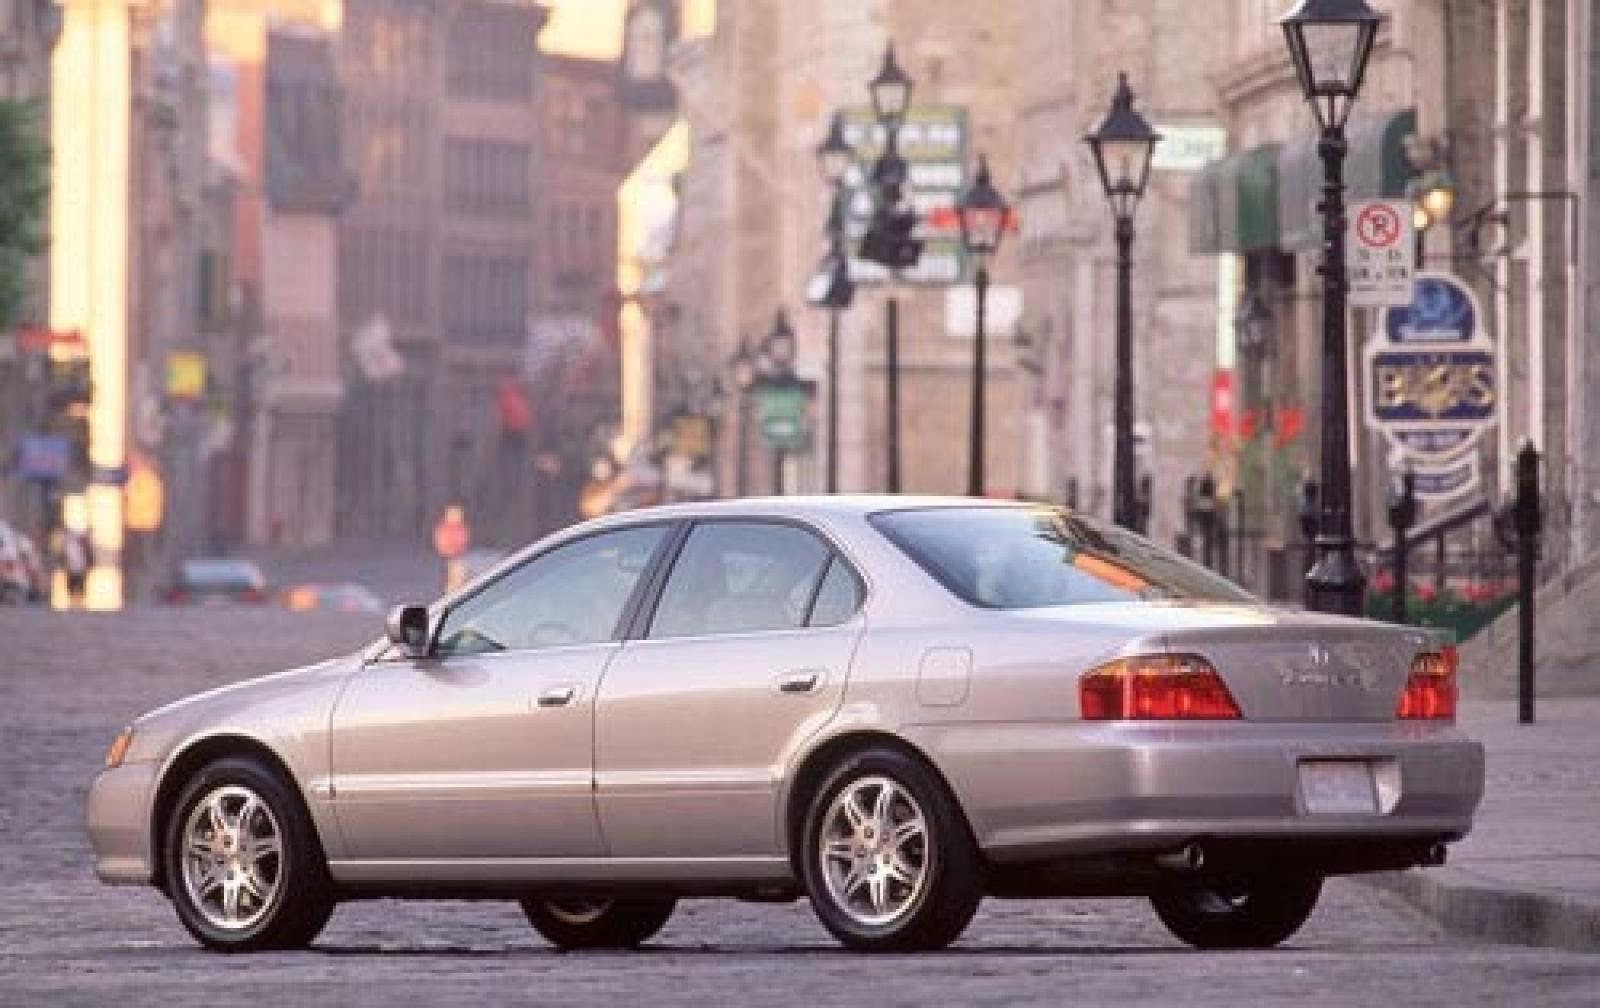 2000 Acura Tl Information And Photos Zombiedrive Stereo Wiring Diagram Along With 1998 Toyota Ta A Radio 800 1024 1280 1600 Origin